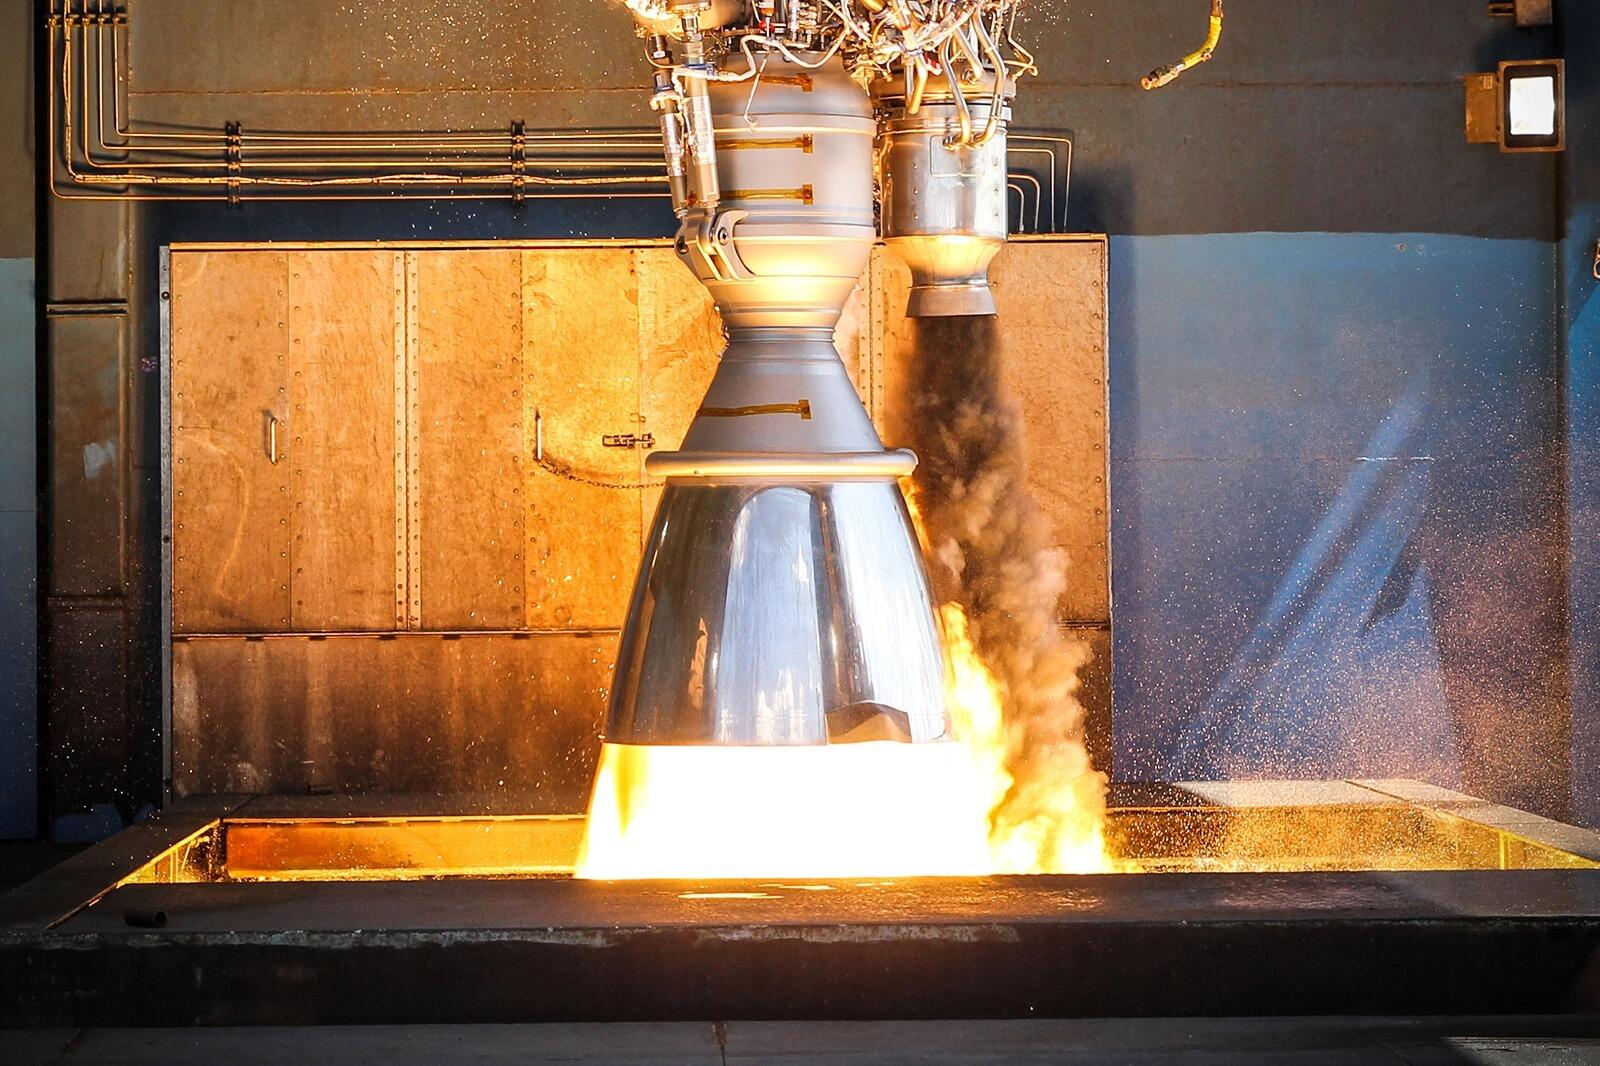 SpaceX tests its engines